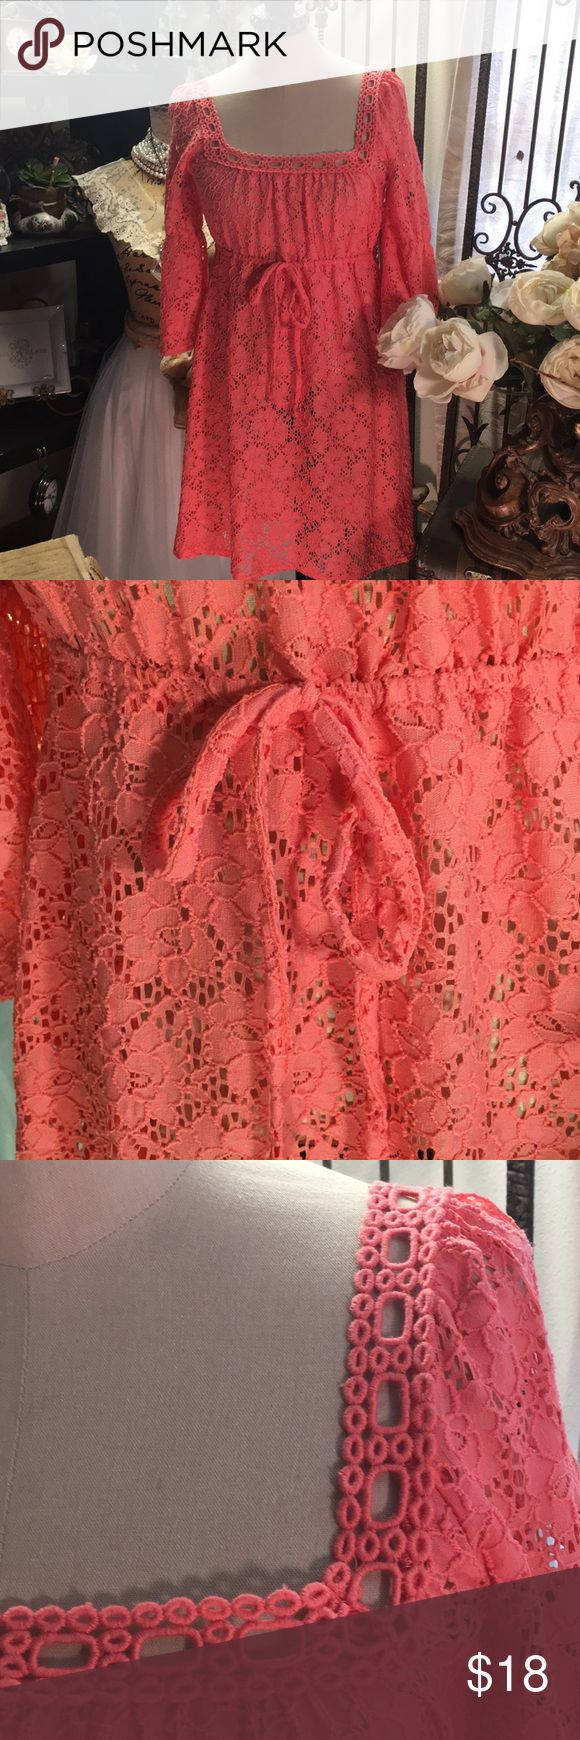 """Laundry by Design Laundry by Design  Peach lace dress  Crochet design along the top  Square neck line  Right above knee length  Synched along the waist with tie  Synched along the 3/4 sleeve  Length: 32""""  Bust: 15"""" New with tags, never worn  Please tag me with further questions Laundry by Design Dresses"""